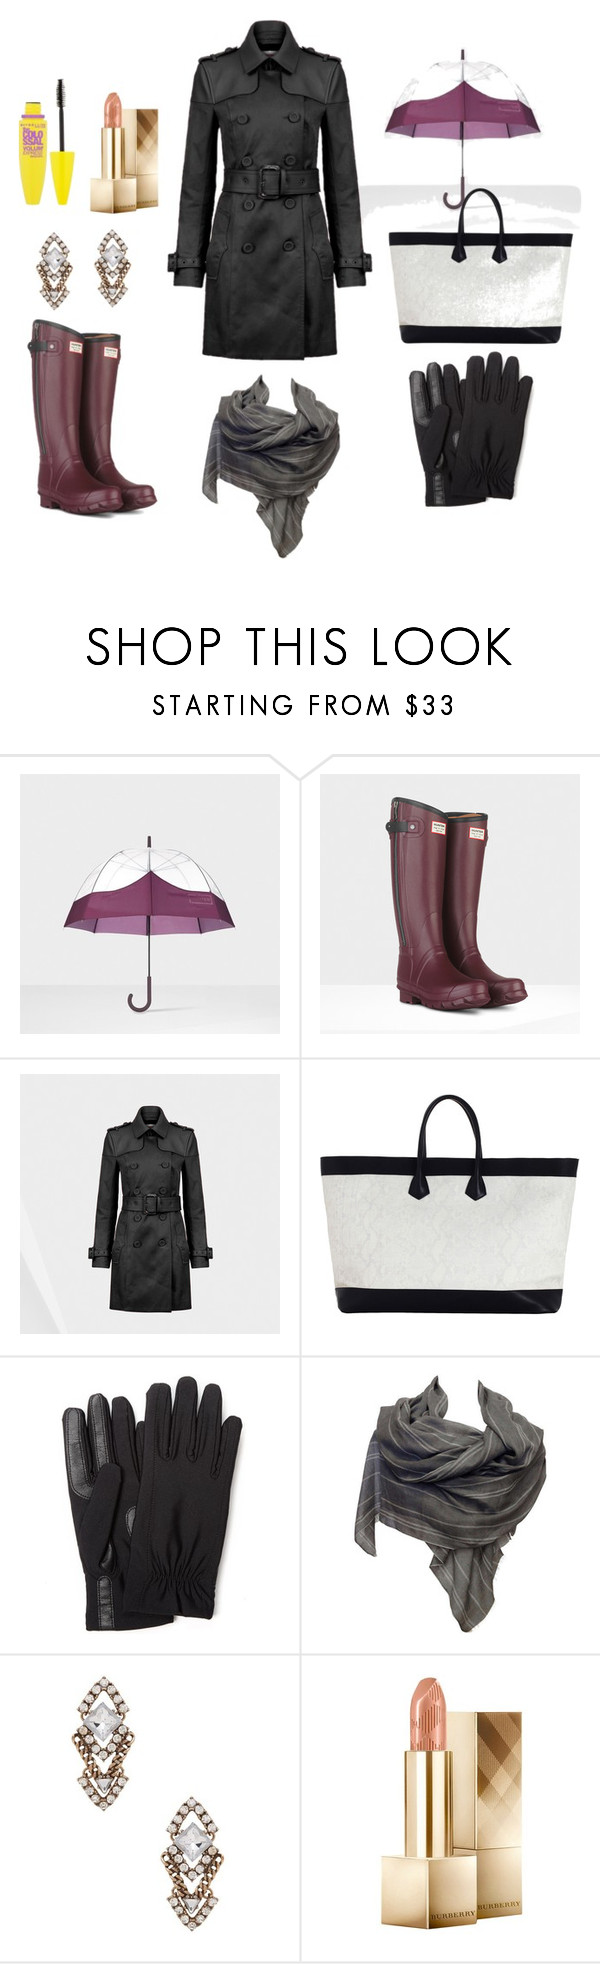 """""""a prueba de agua"""" by darlen-anzola ❤ liked on Polyvore featuring Hunter, Zimmermann, Isotoner, Denis Colomb, Sparkling Sage, Burberry and Maybelline"""